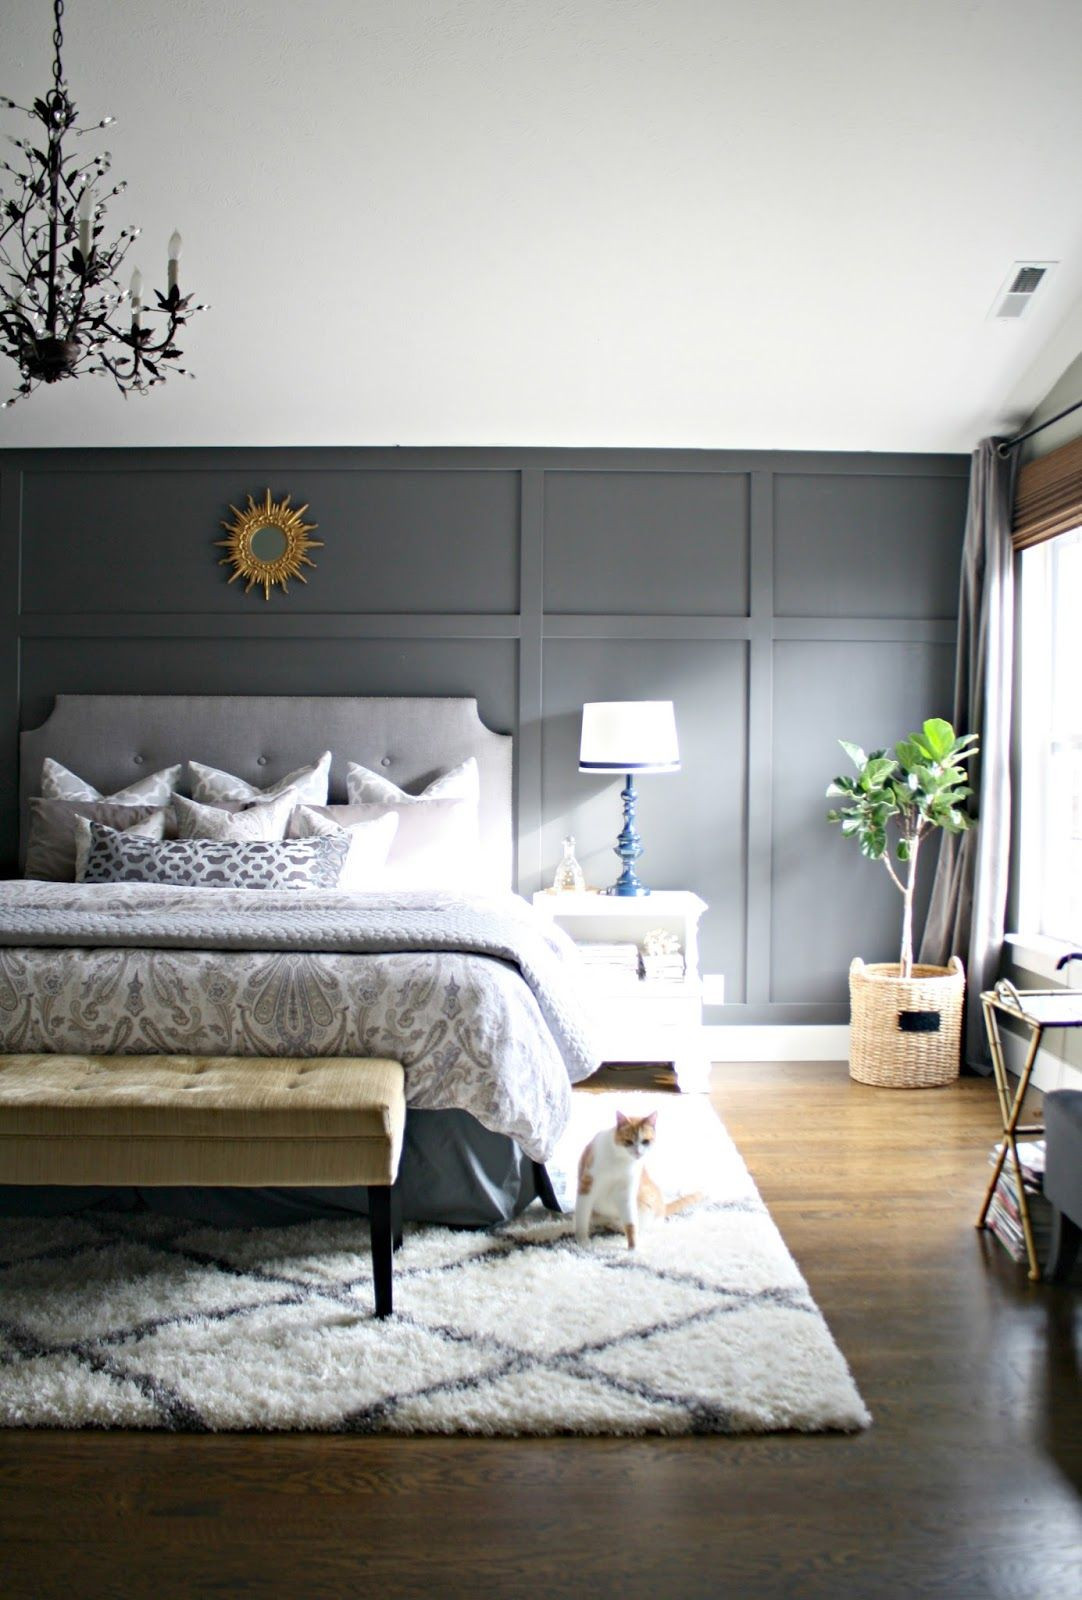 Best ideas about Rooms With Accent Walls . Save or Pin Gaining a Few Extra Inches DIY projects Now.